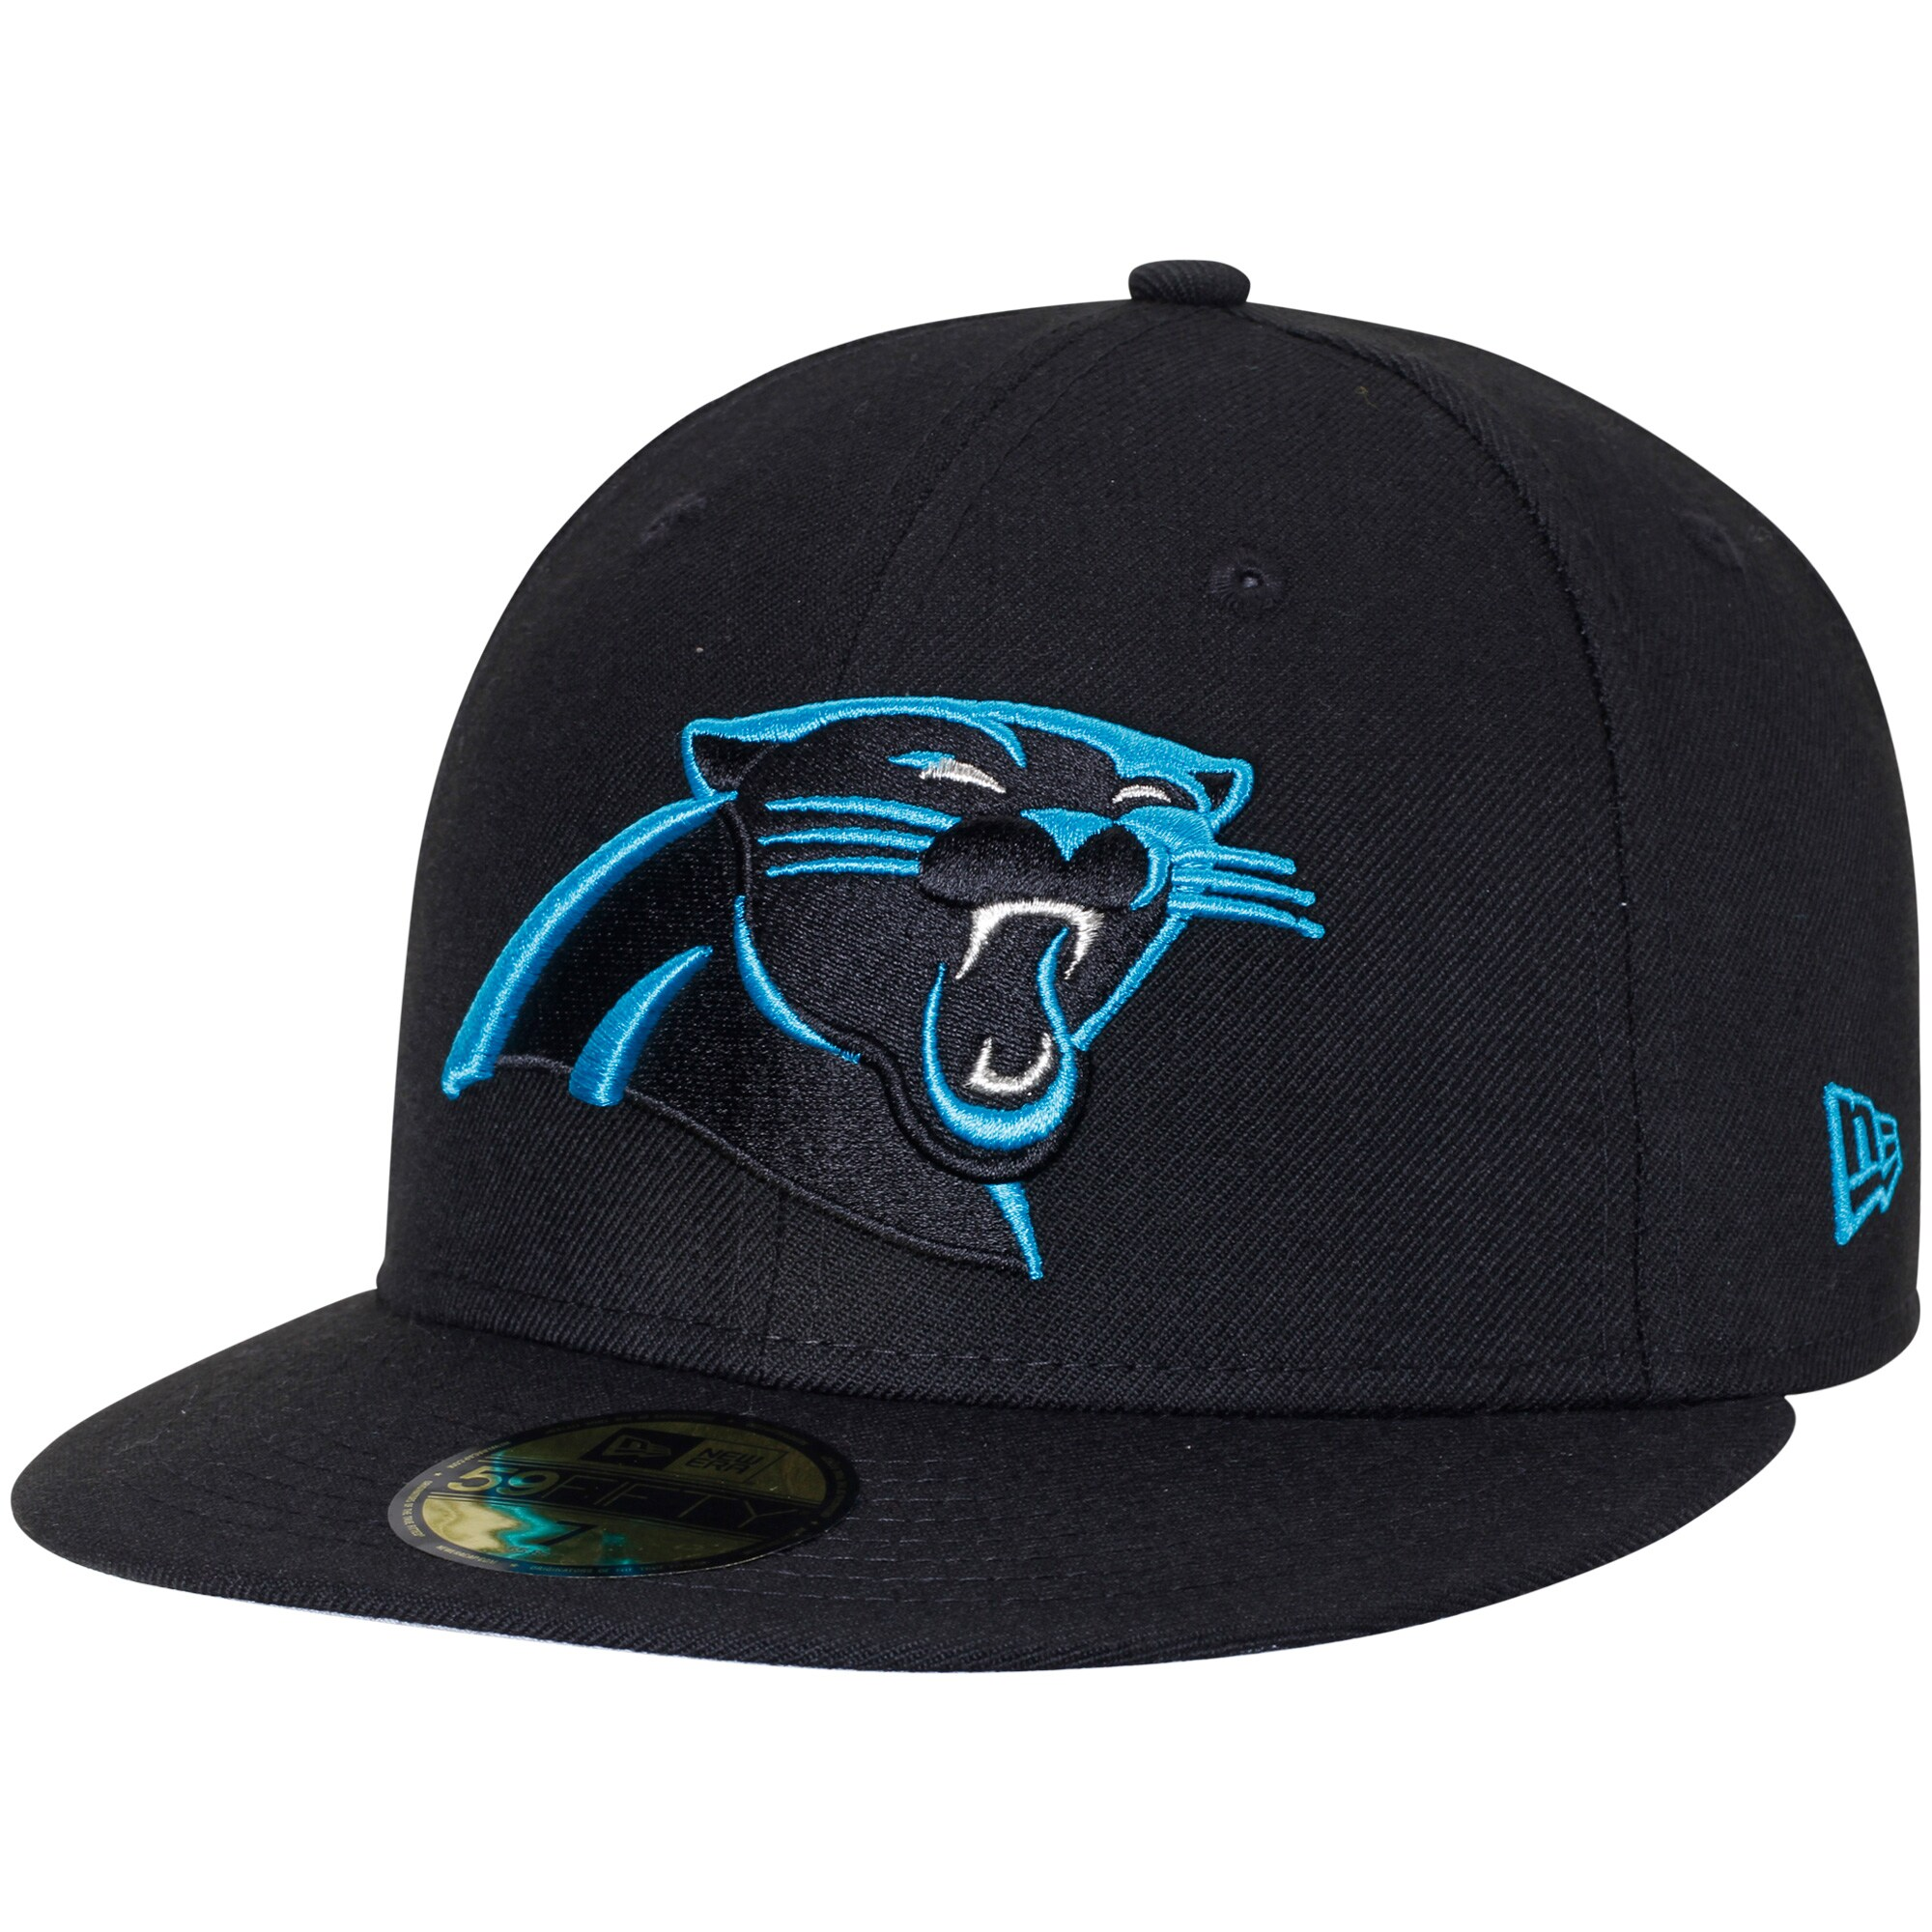 Carolina Panthers New Era Omaha 59FIFTY Fitted Hat - Black